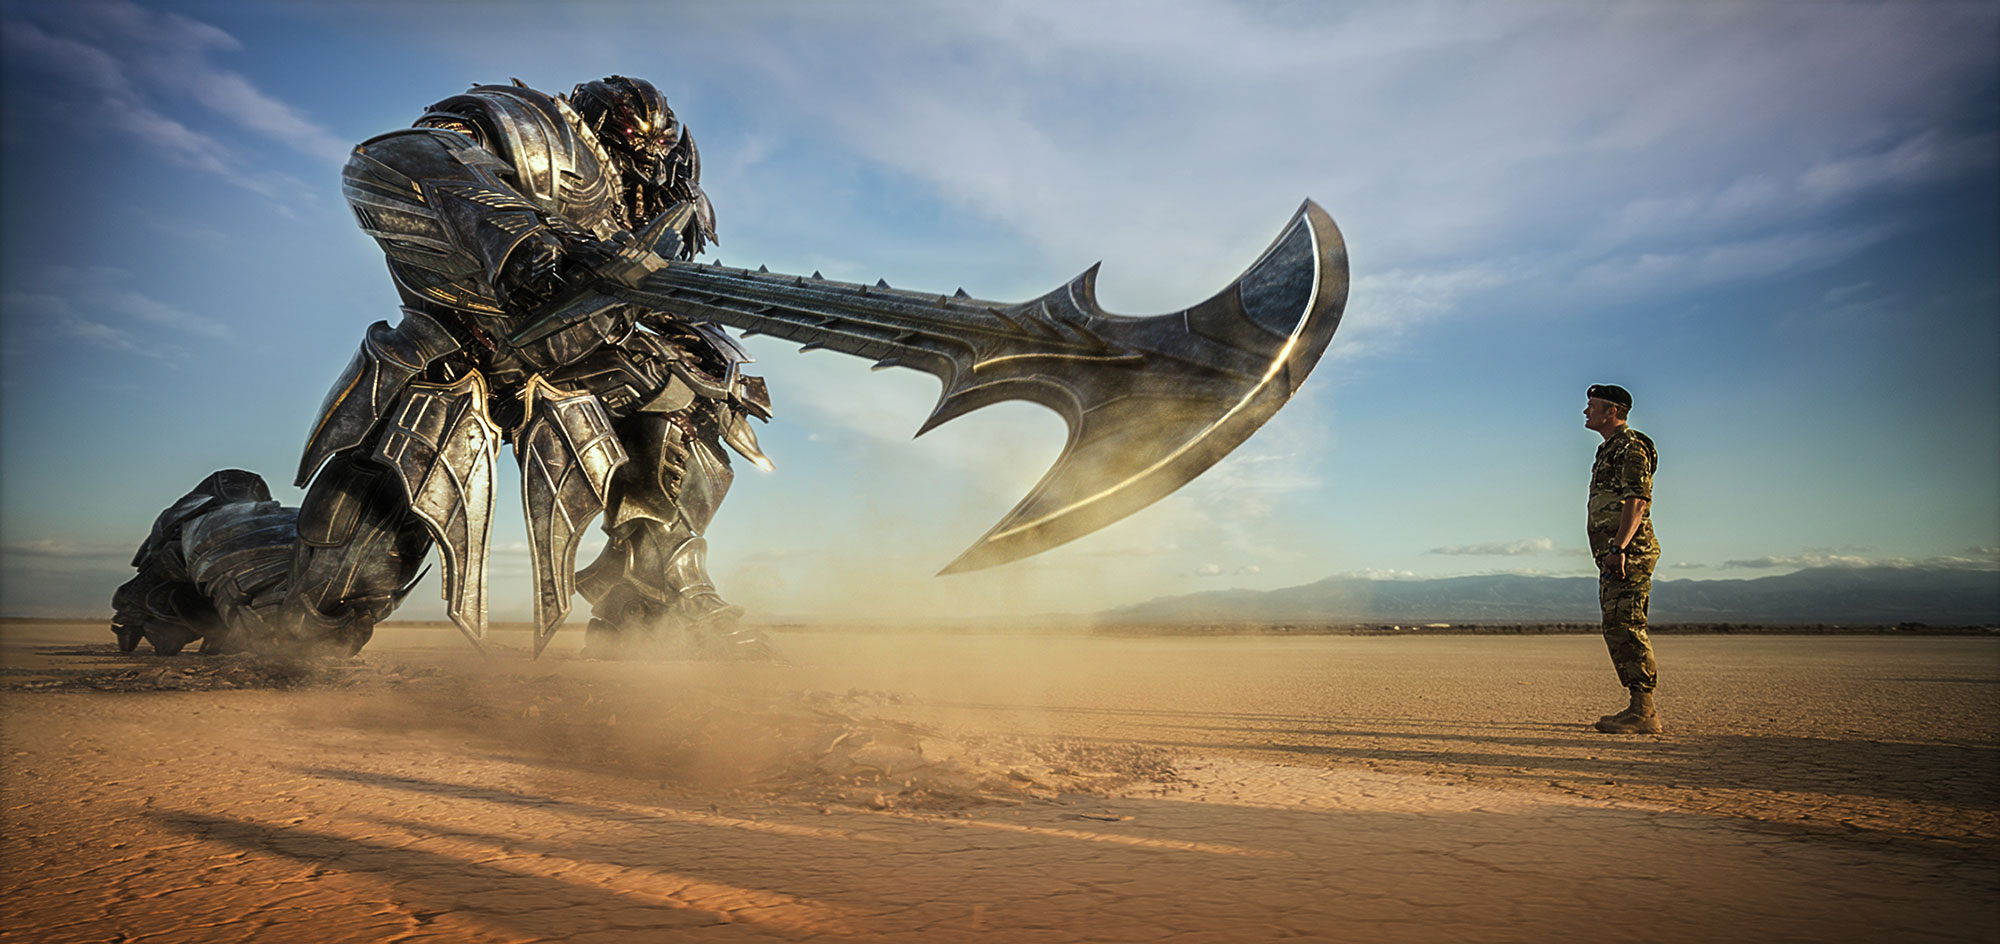 Does Transformers: The Last Knight stand up to the hype? Who knows.